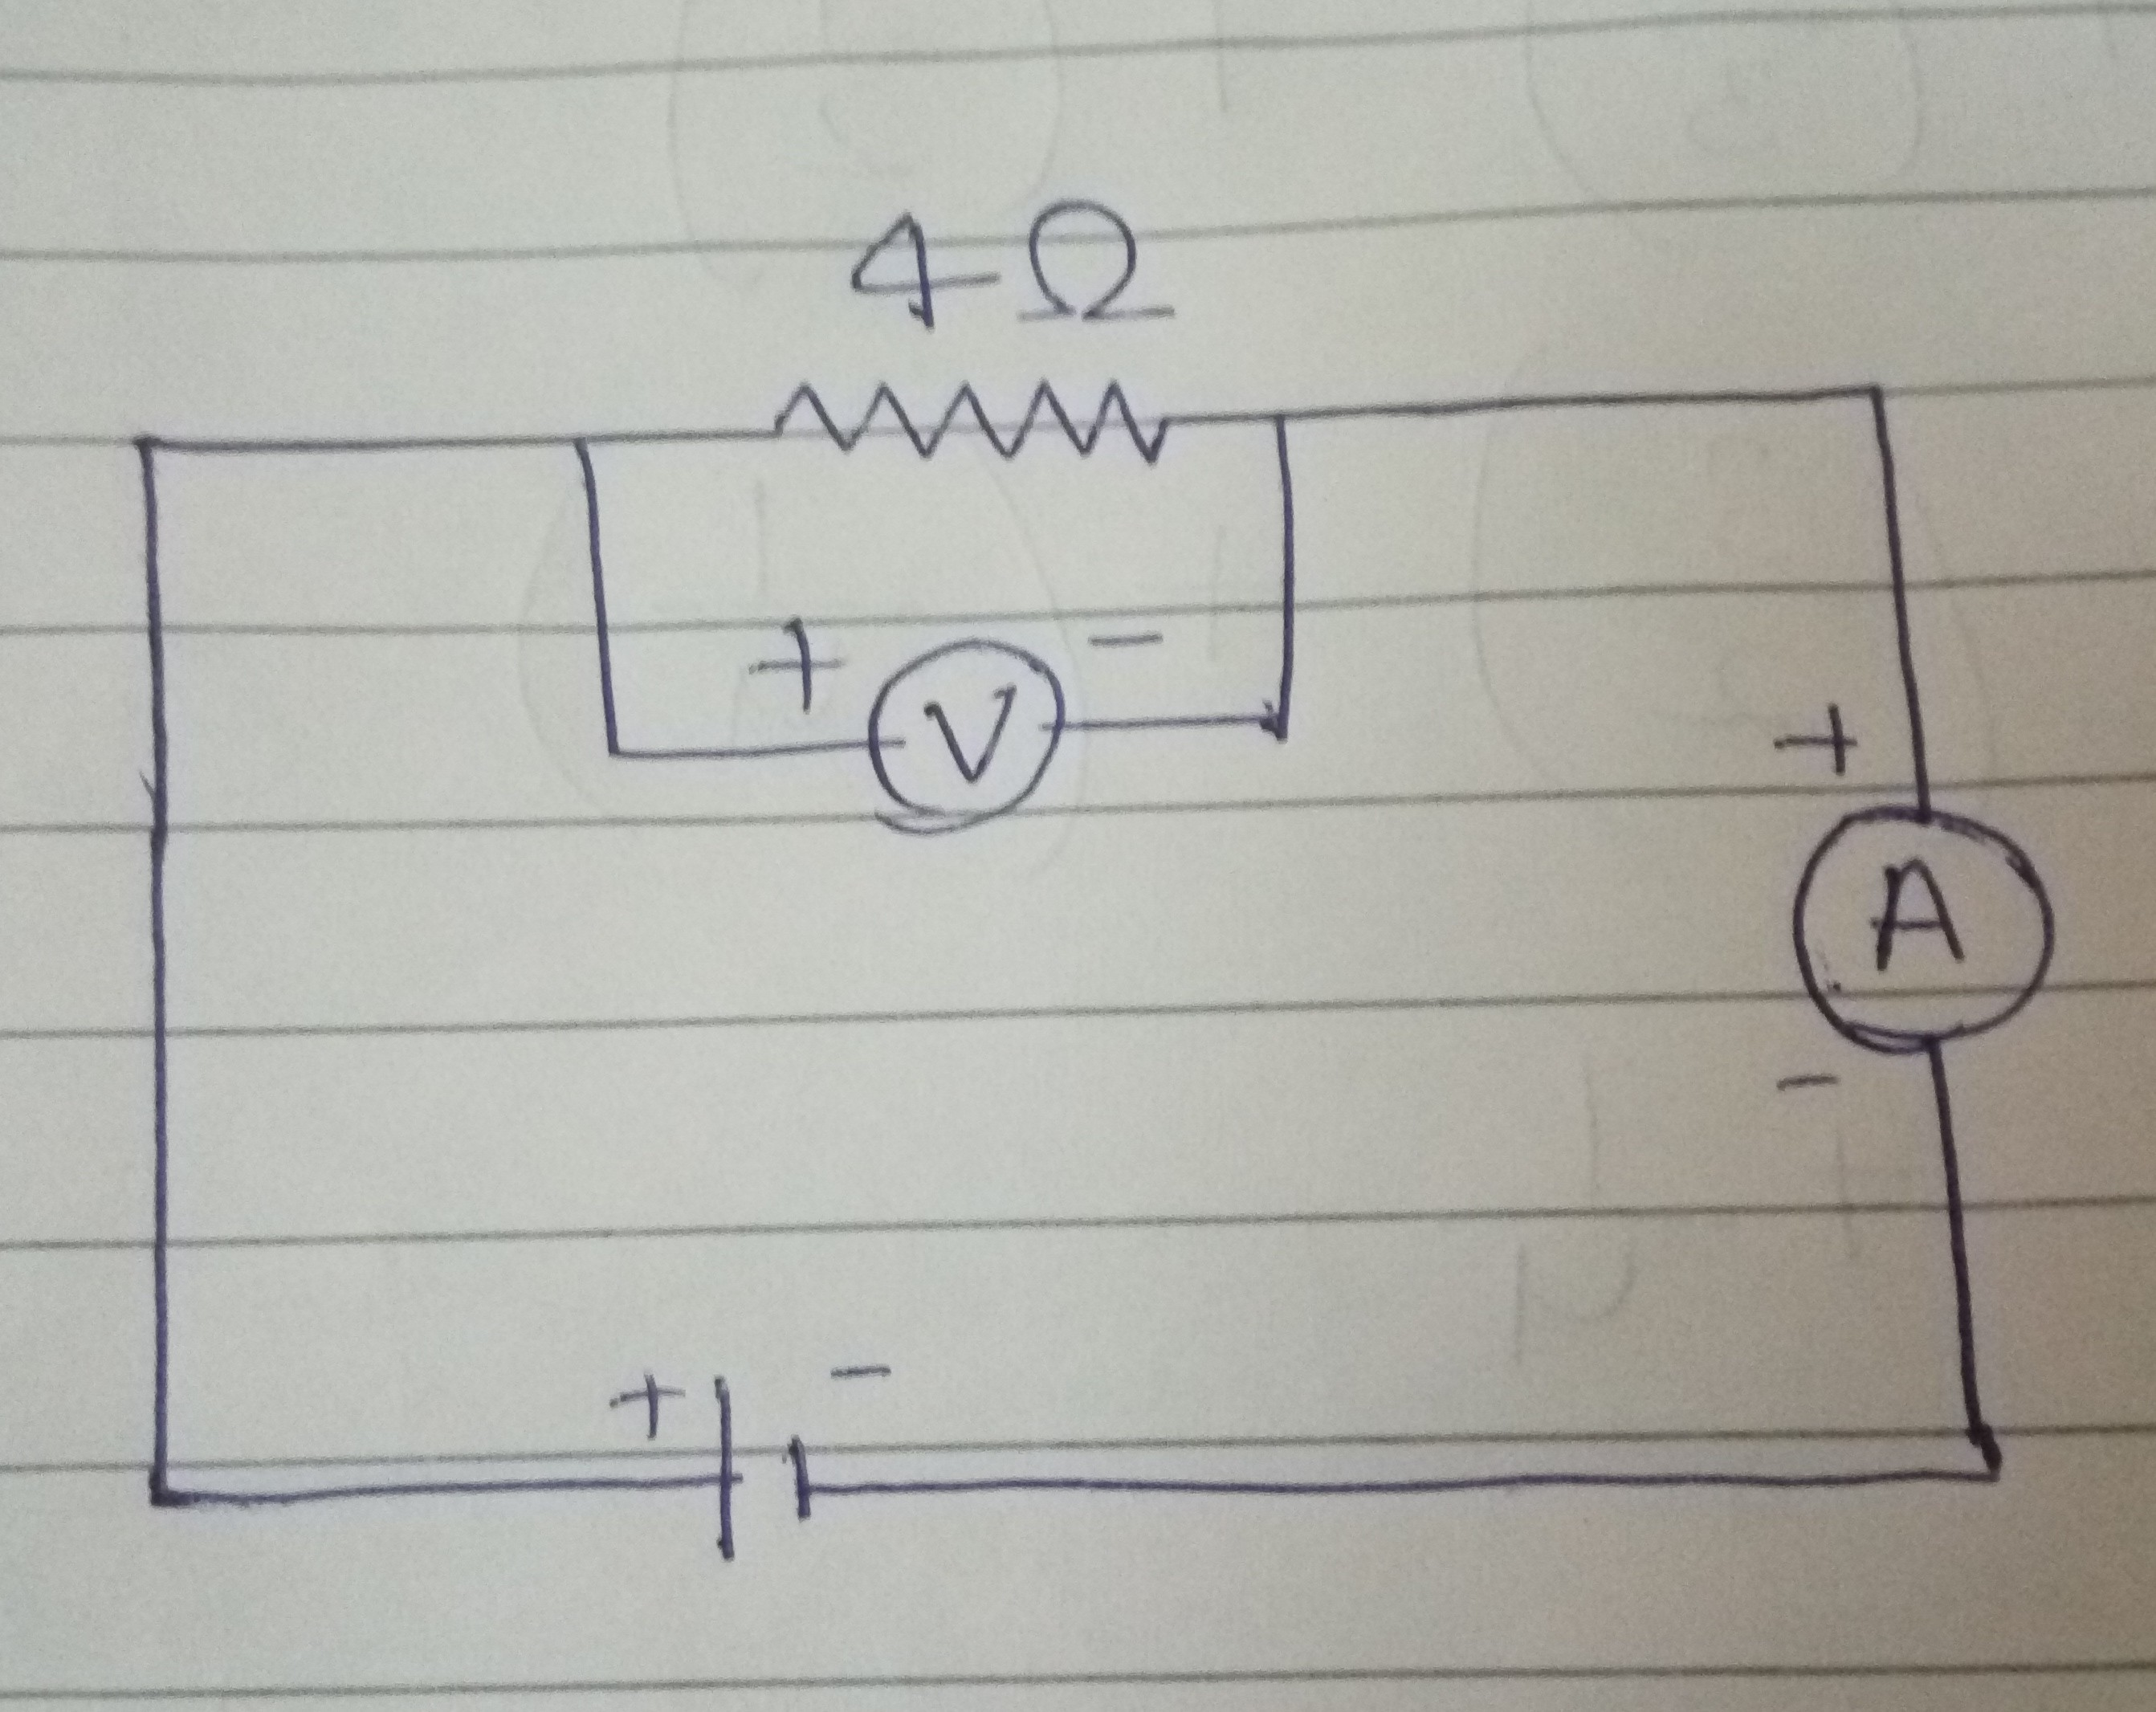 draw a circuit diagram of an electrical circuit containing a cell ki ...